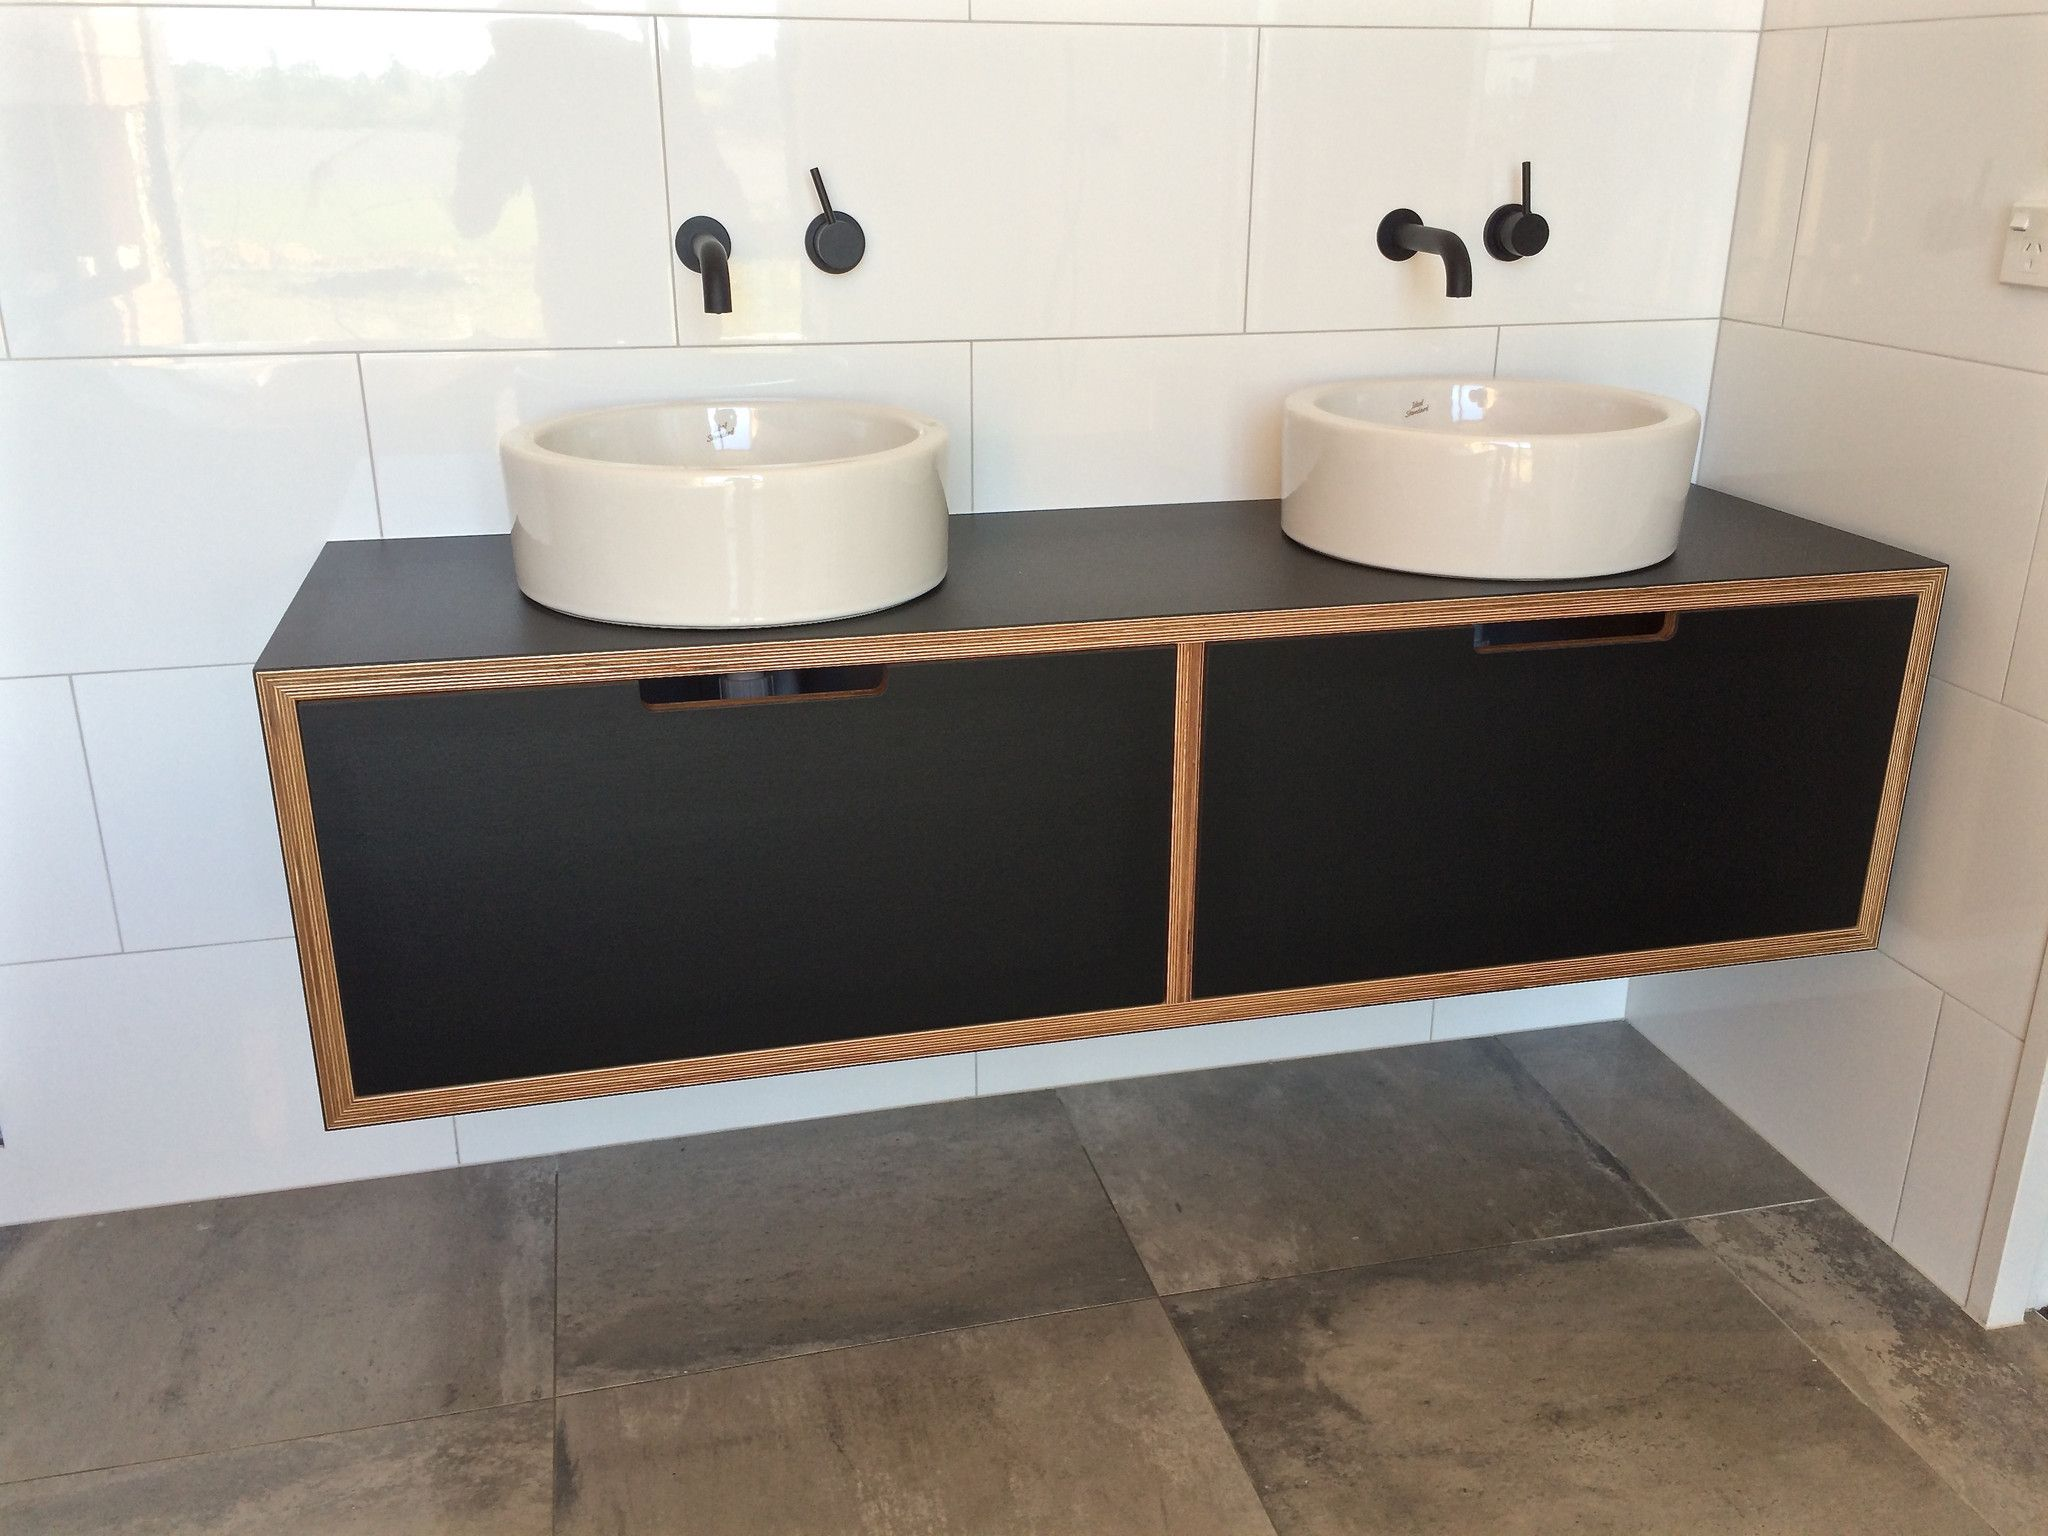 enjoyable formica bathroom vanities. Black formica laminated onto Birch plywood  the adults version of yellow that looks fabulous with black tap ware laminate vanity on custom made in NZ Dream